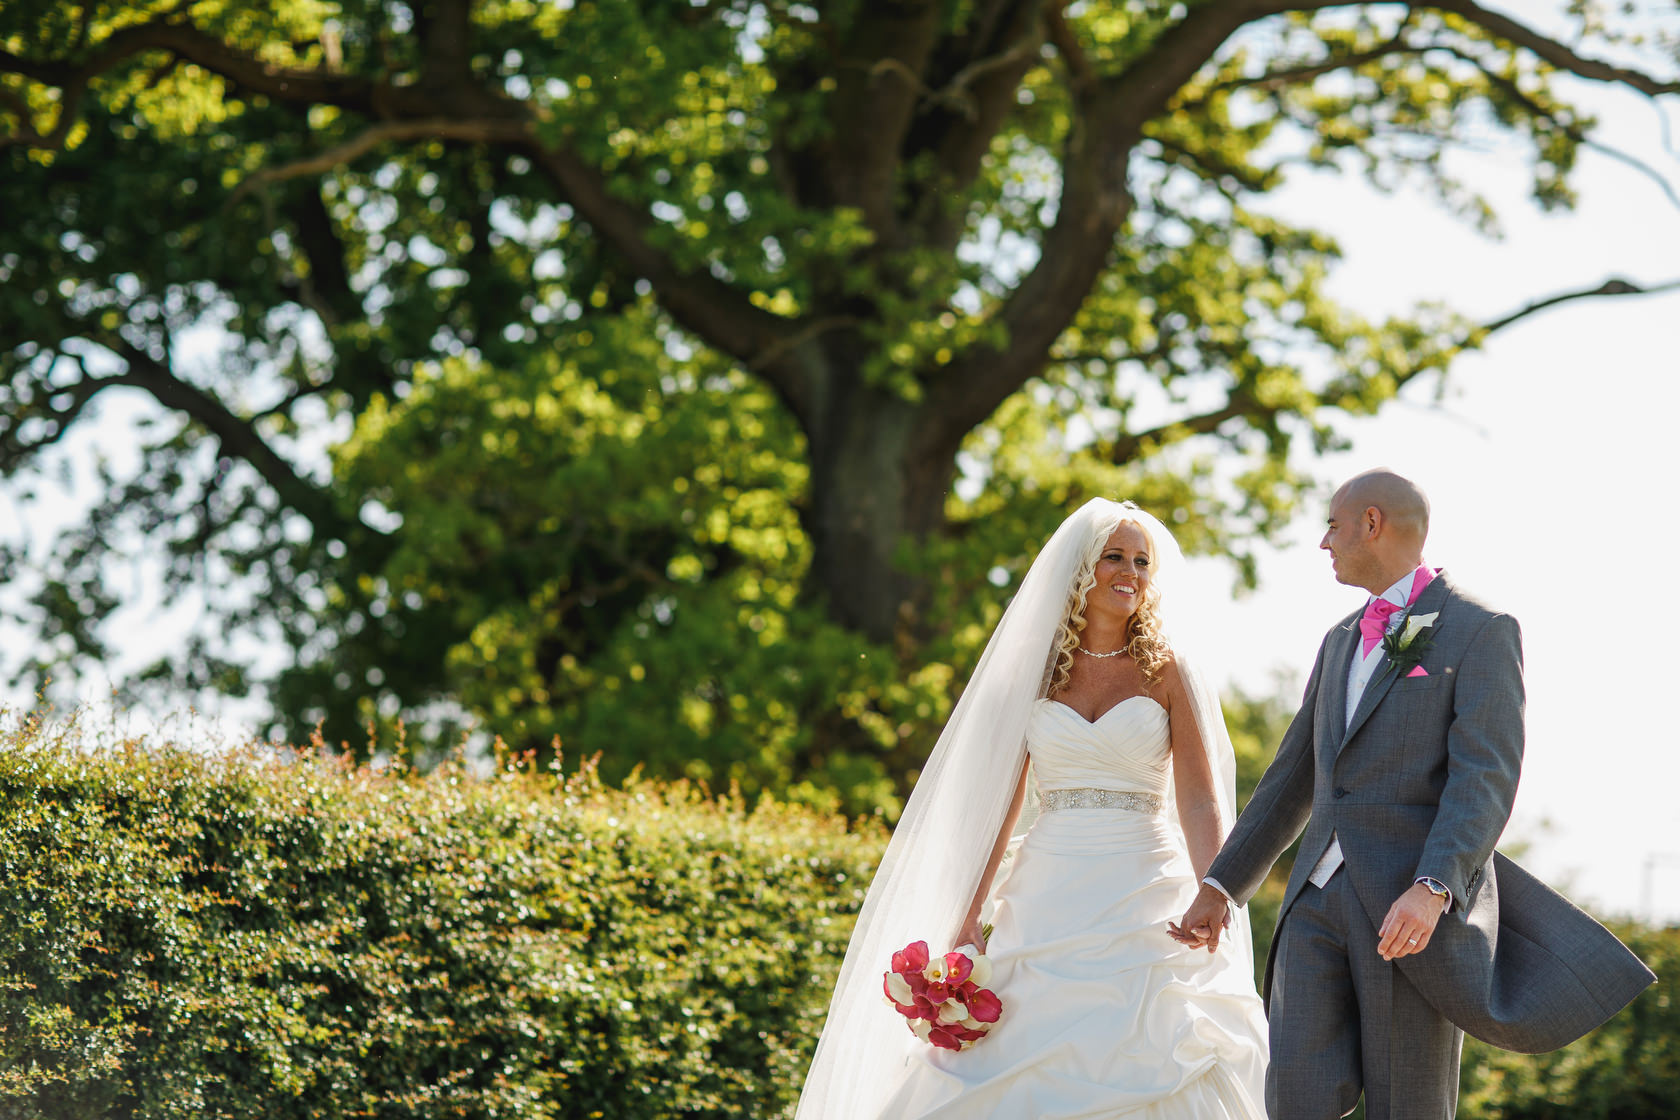 Wedding Photos Sandhole Oak Barn - ARJ Photography